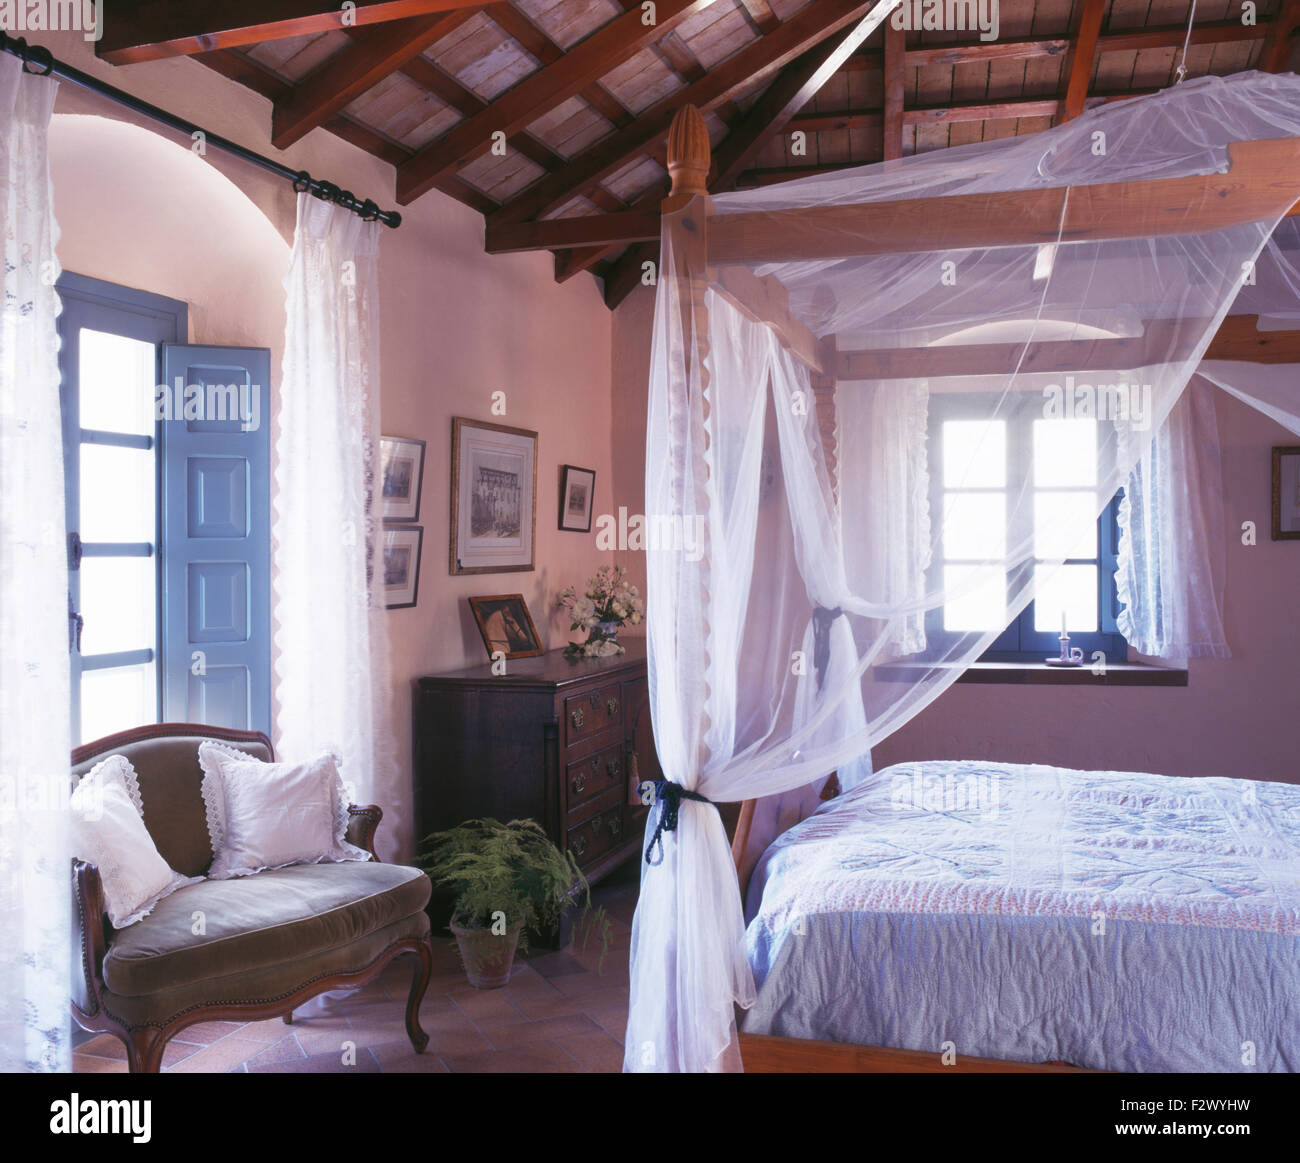 Four Poster Bed With White Mosquito Net In Rustic Spanish Country Stock Photo Alamy